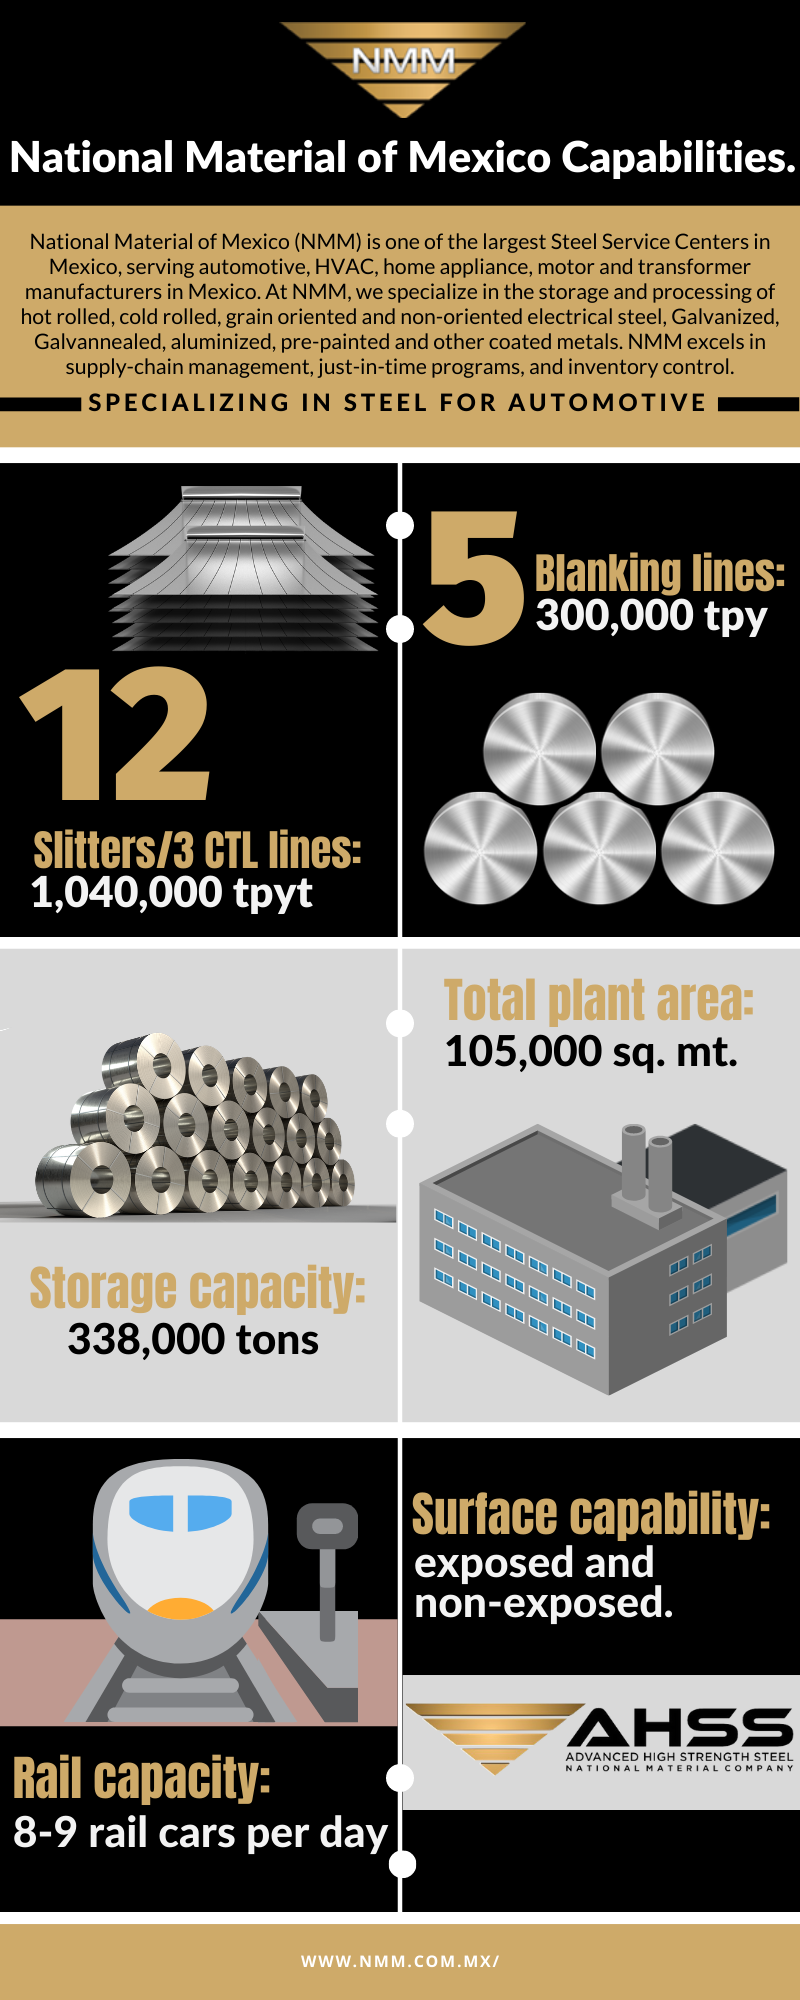 Infographic exemplifying National Material of Mexico's capabilities, including 12 steel slitters, 5 blanking lines, 338,000 tons of storage capacity, 426,000 sq. ft. of land, and AHSS expertise.